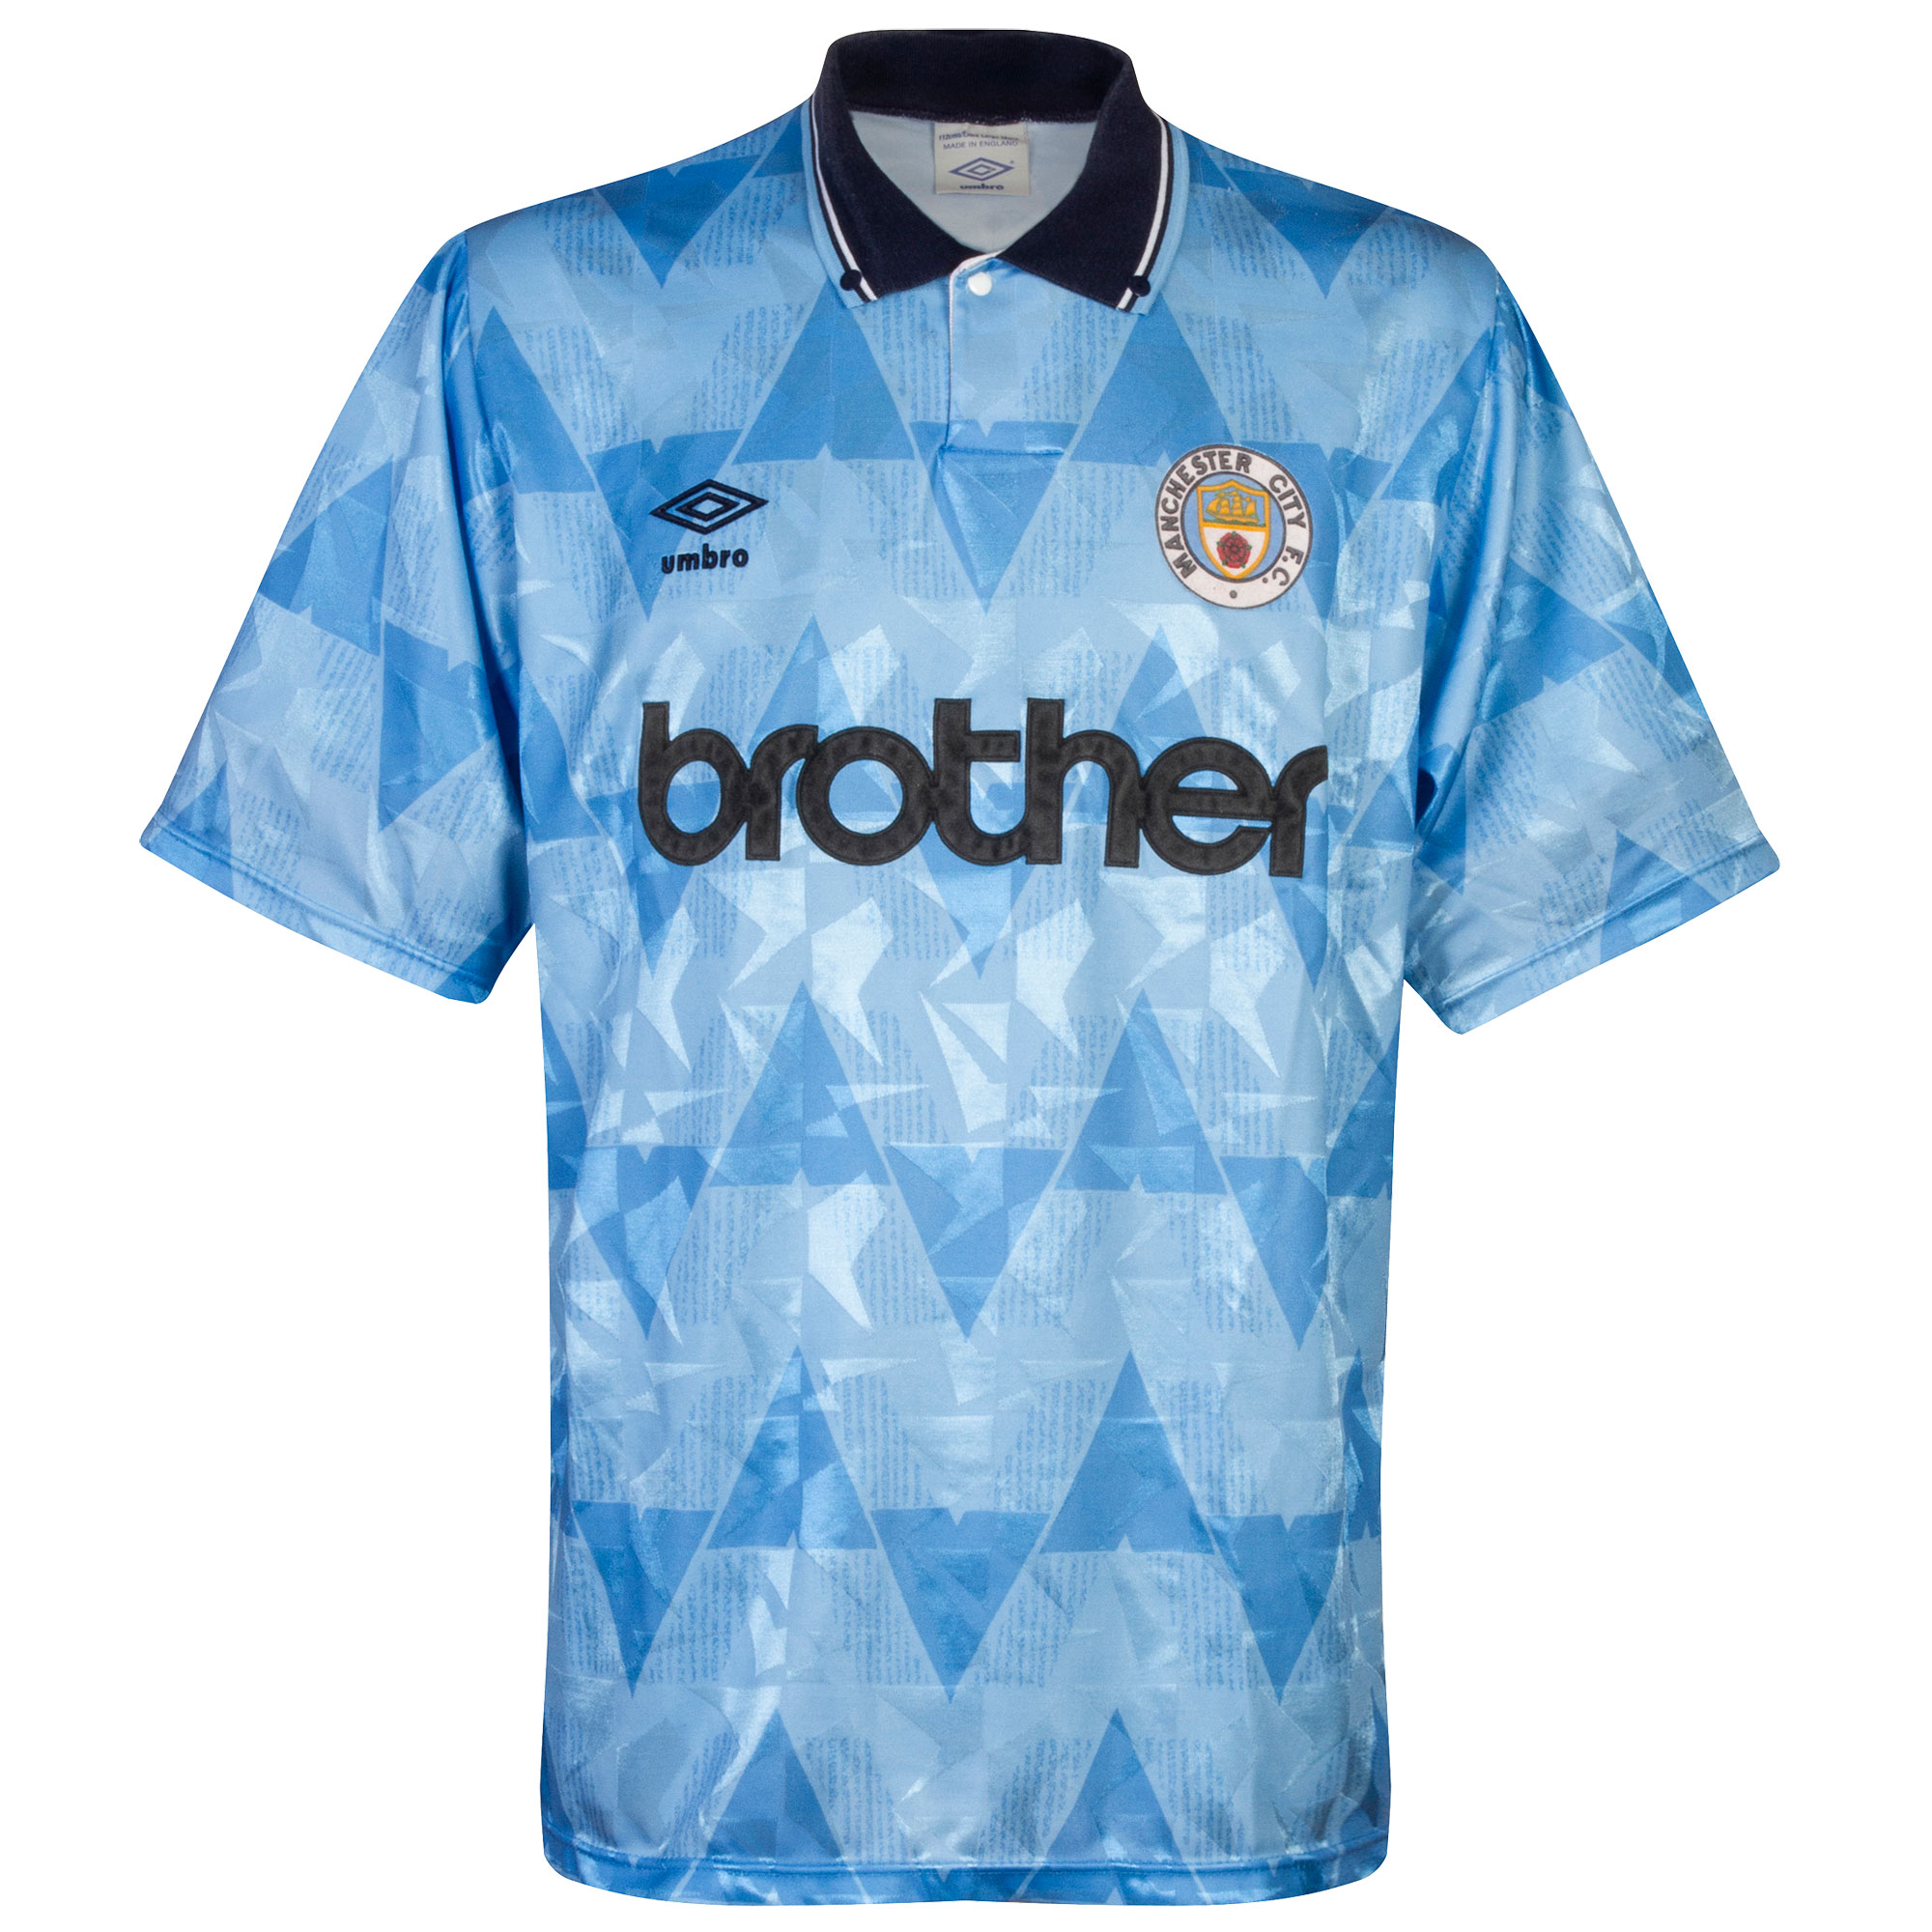 Umbro Manchester City 1989-1991 Home Shirt - USED Condition (Great) - Size Medium